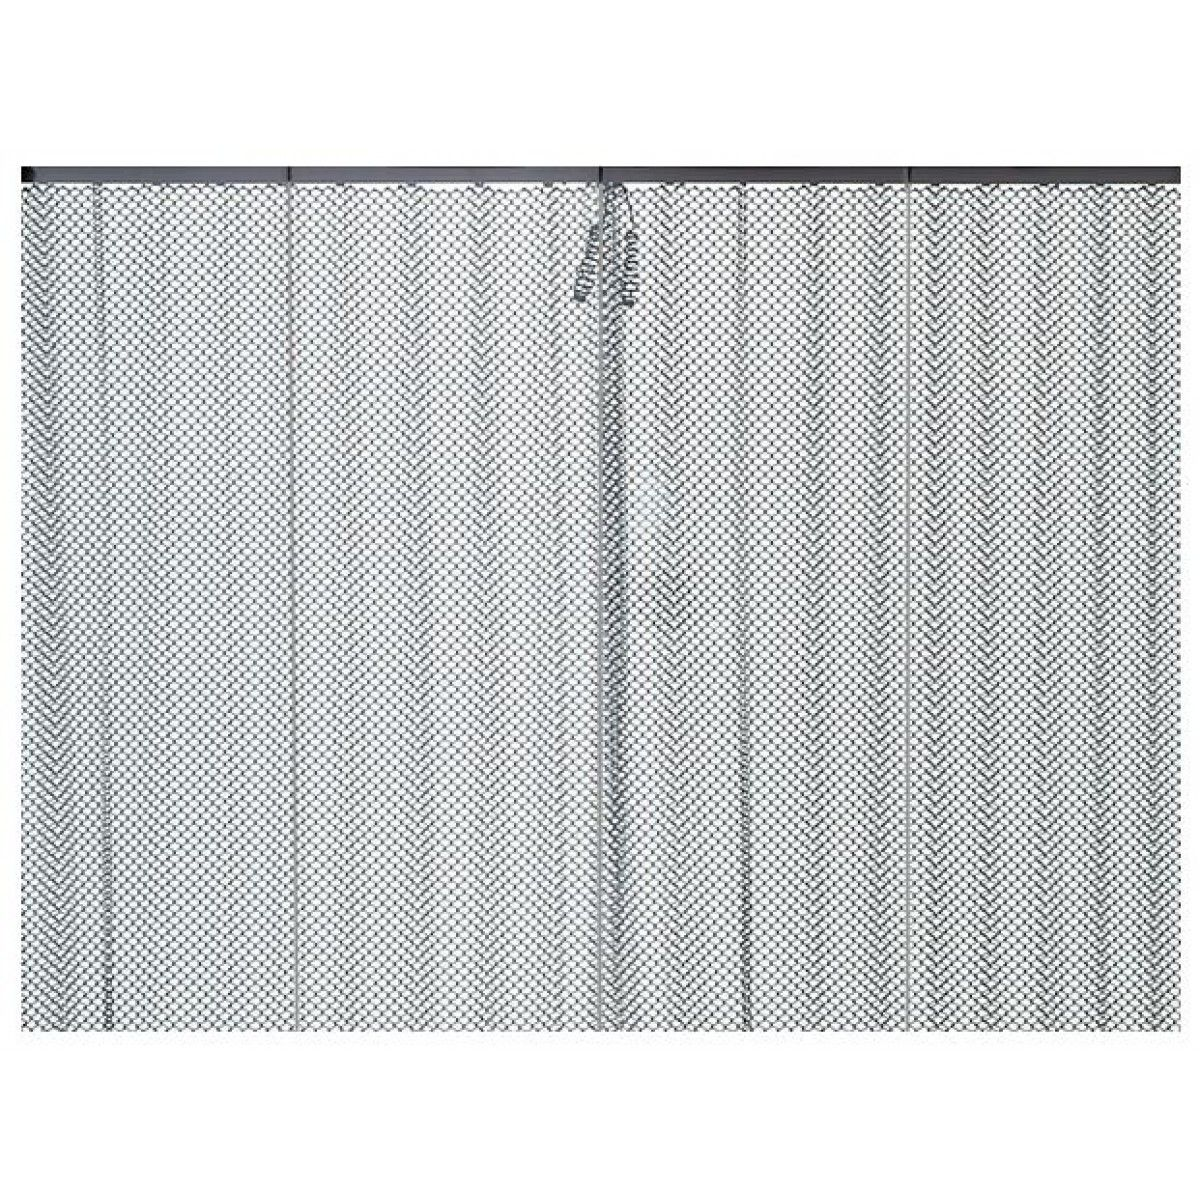 Mesh Fireplace Doors Or Mesh Curtains Brick Anew Fireplace Paint